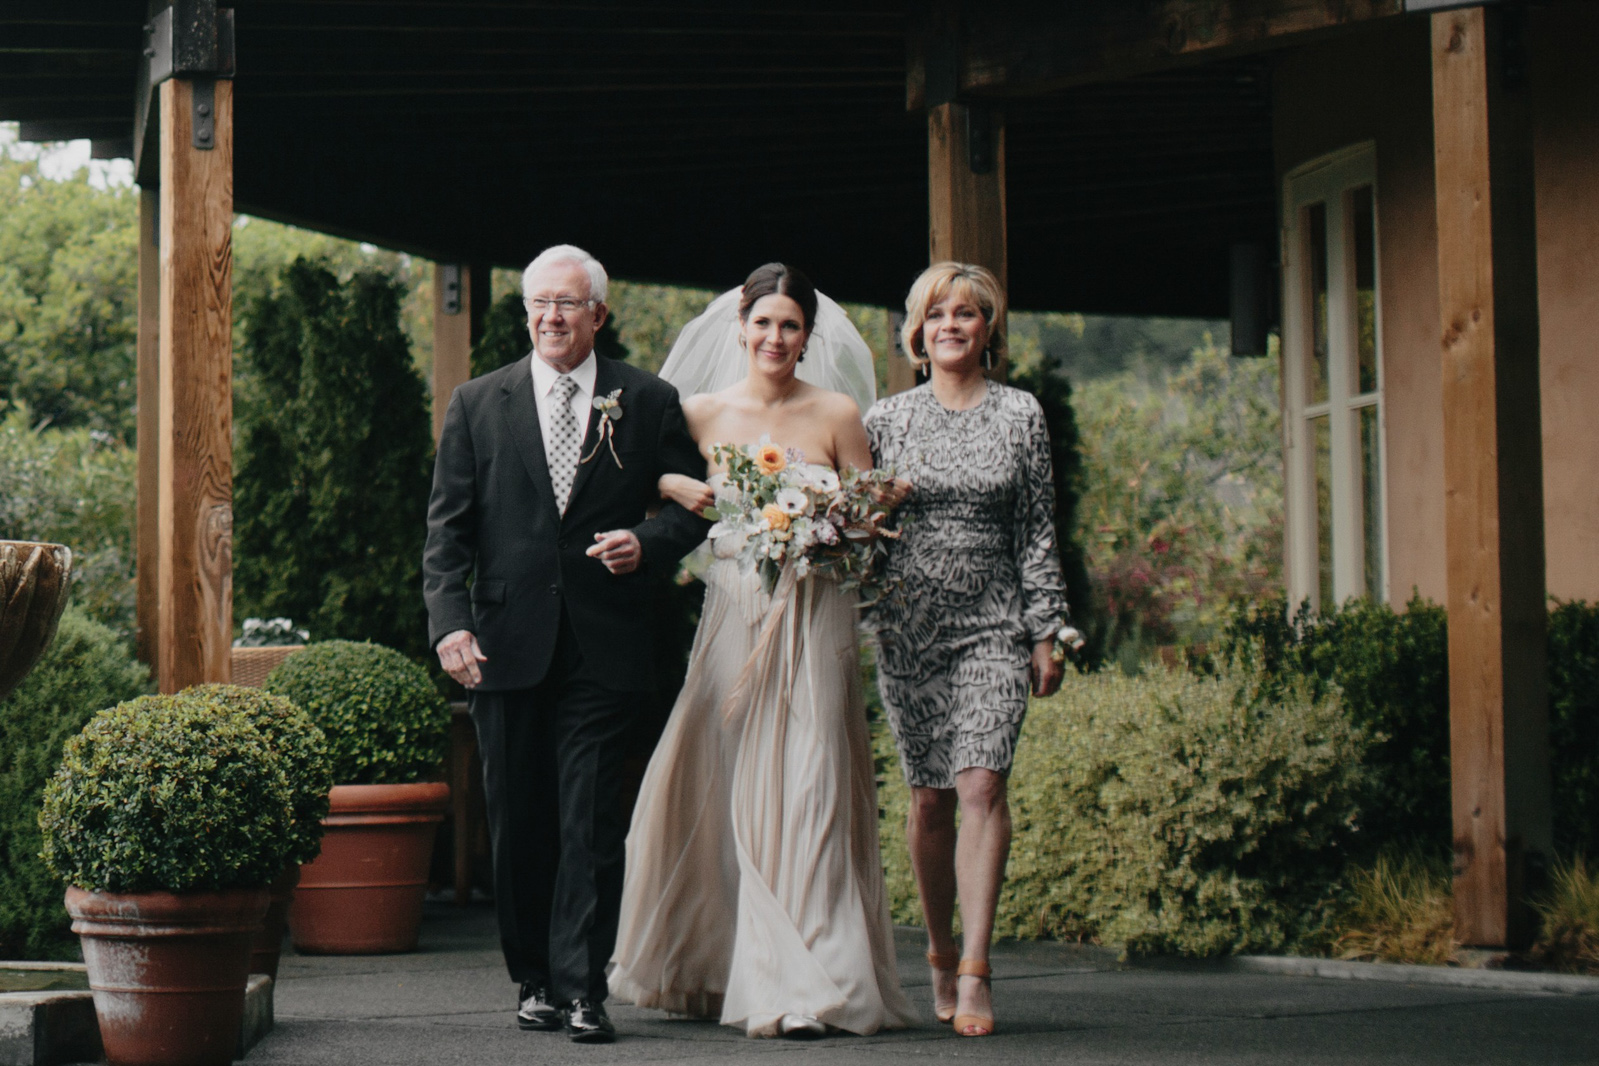 San Francisco - Napa Valley Wedding Photographer - For the Love of It-009.jpg